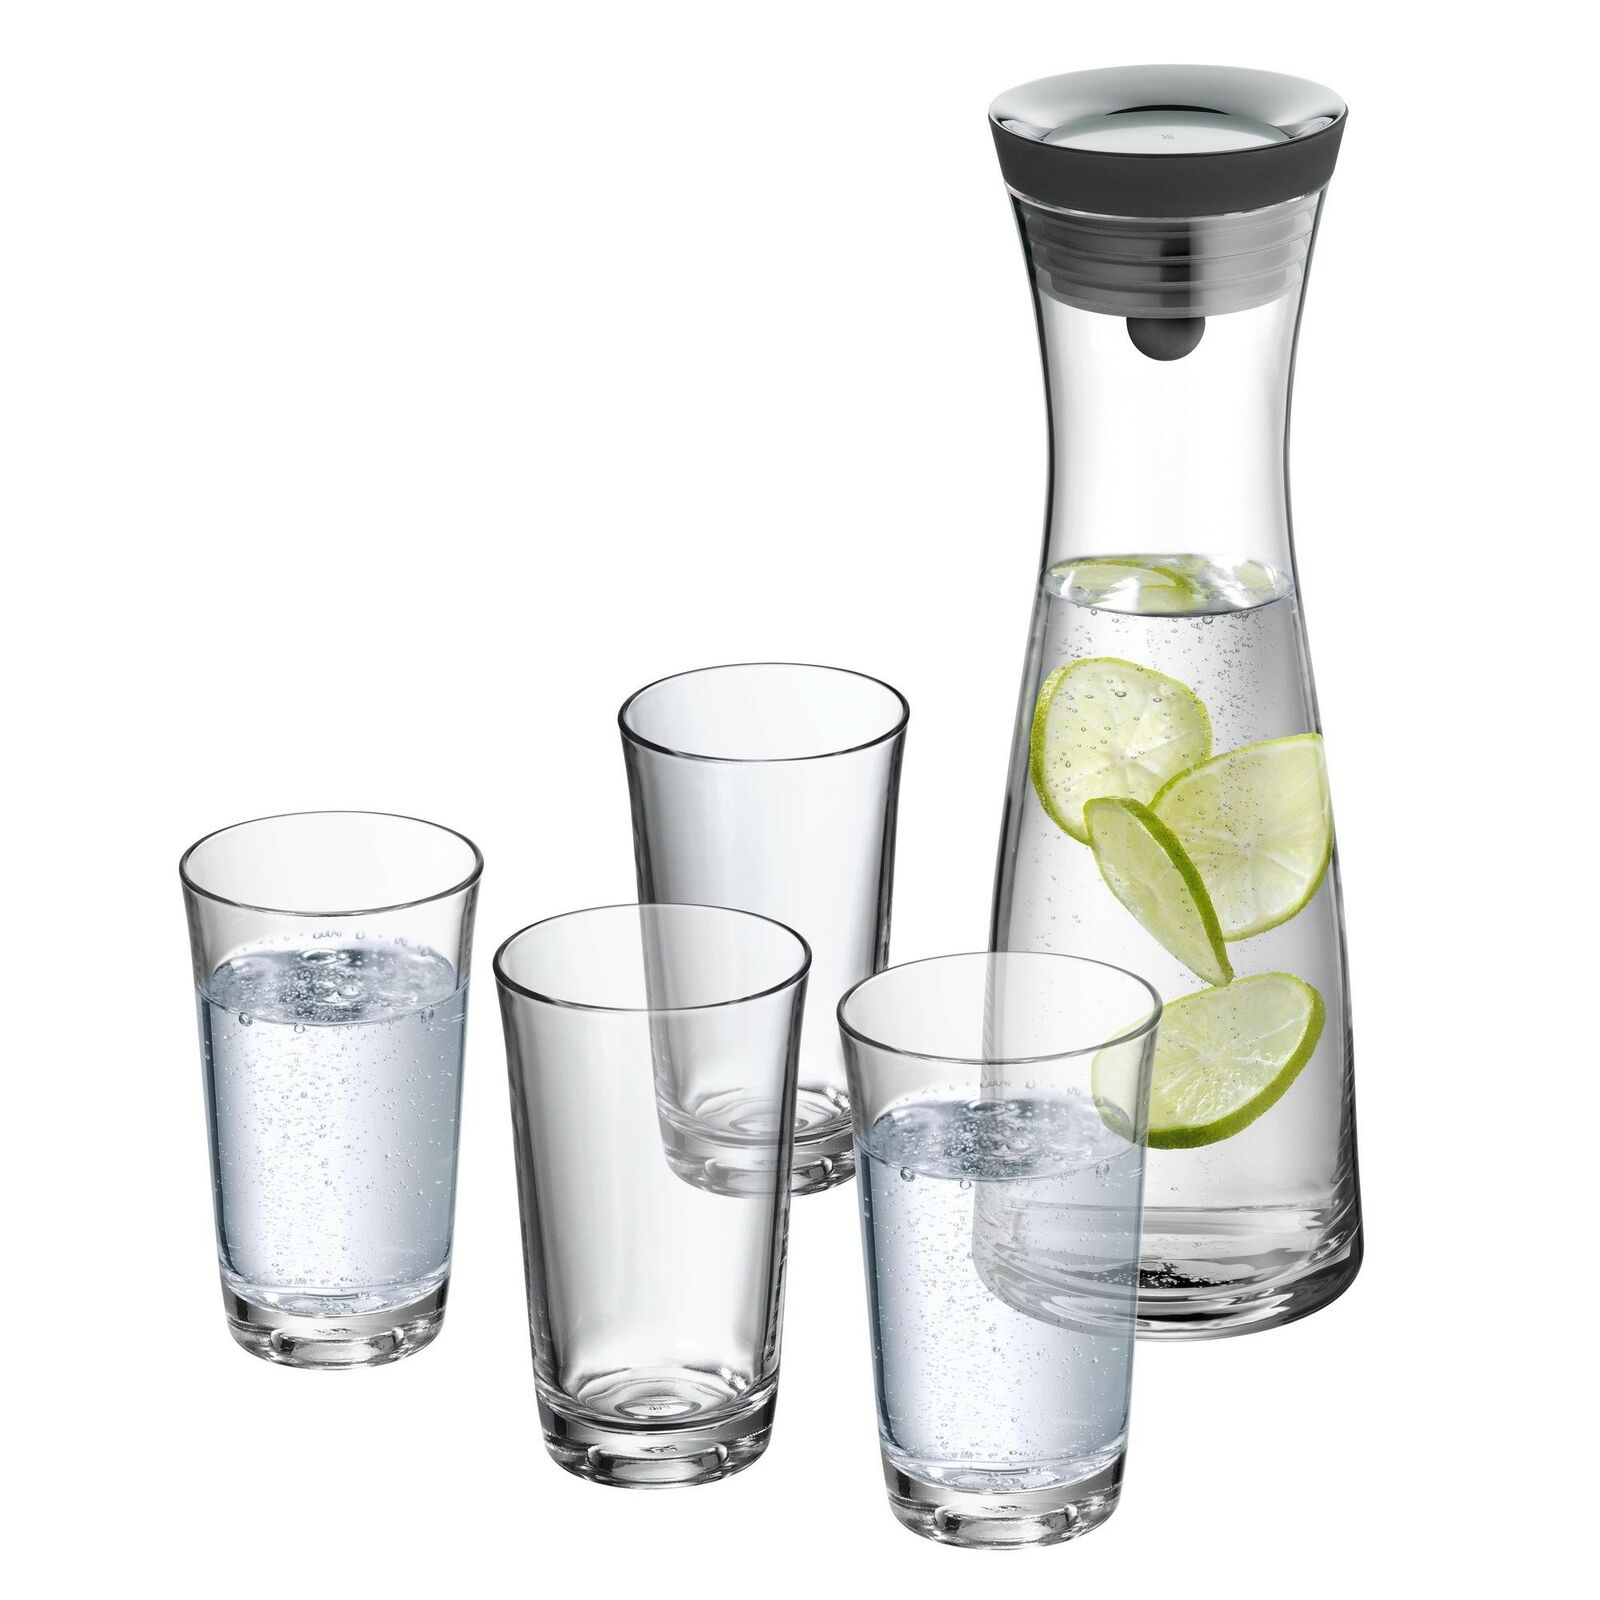 WMF Basic Set 5 Water Decanter with 4 Water Glass, 38.7 x 34.5 x 38.7 cm